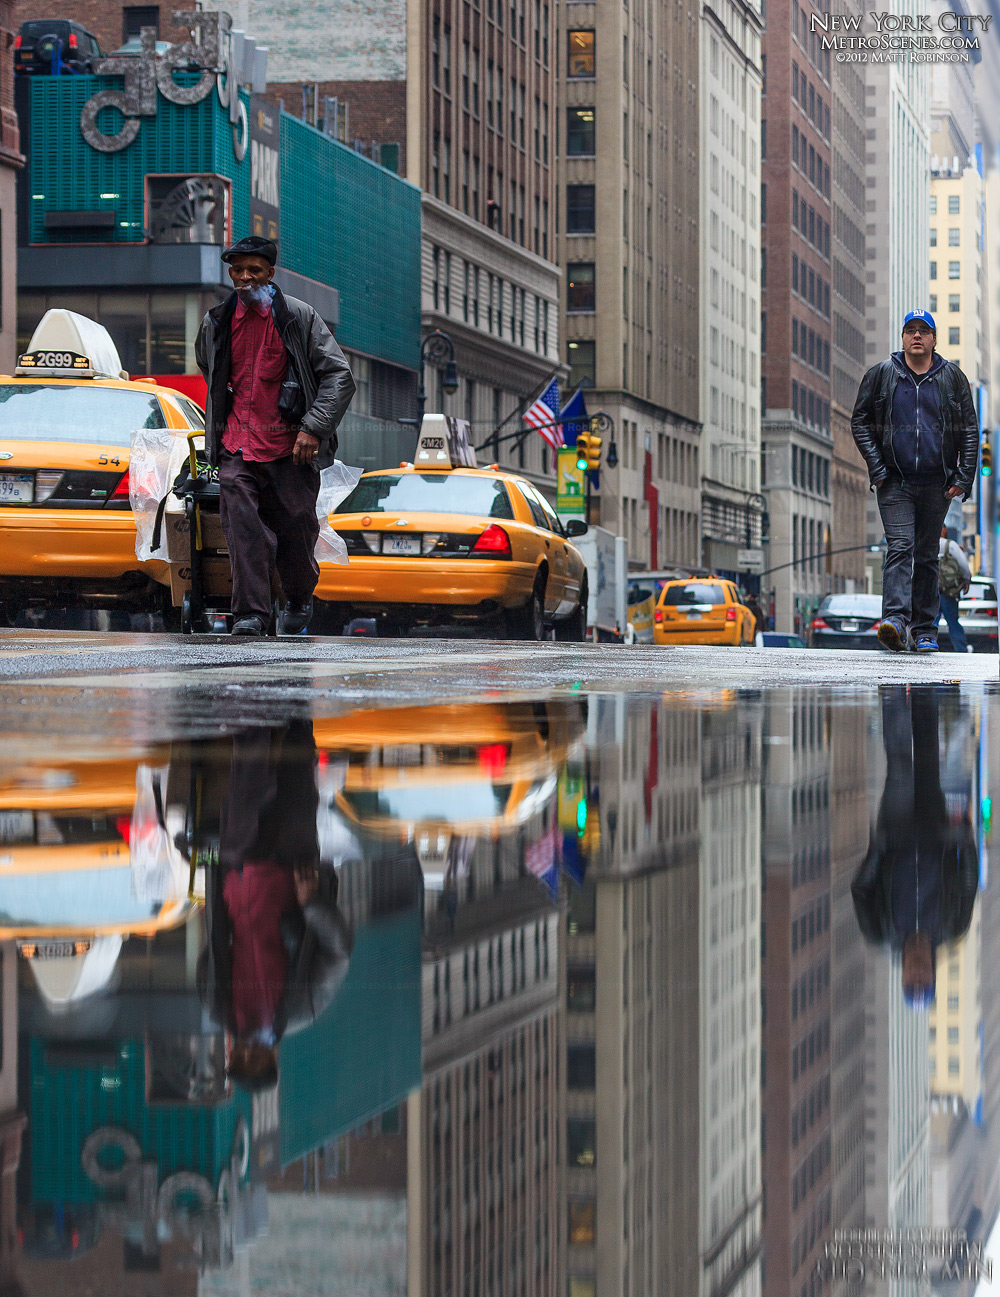 Puddle reflections on Seventh Avenue in New York